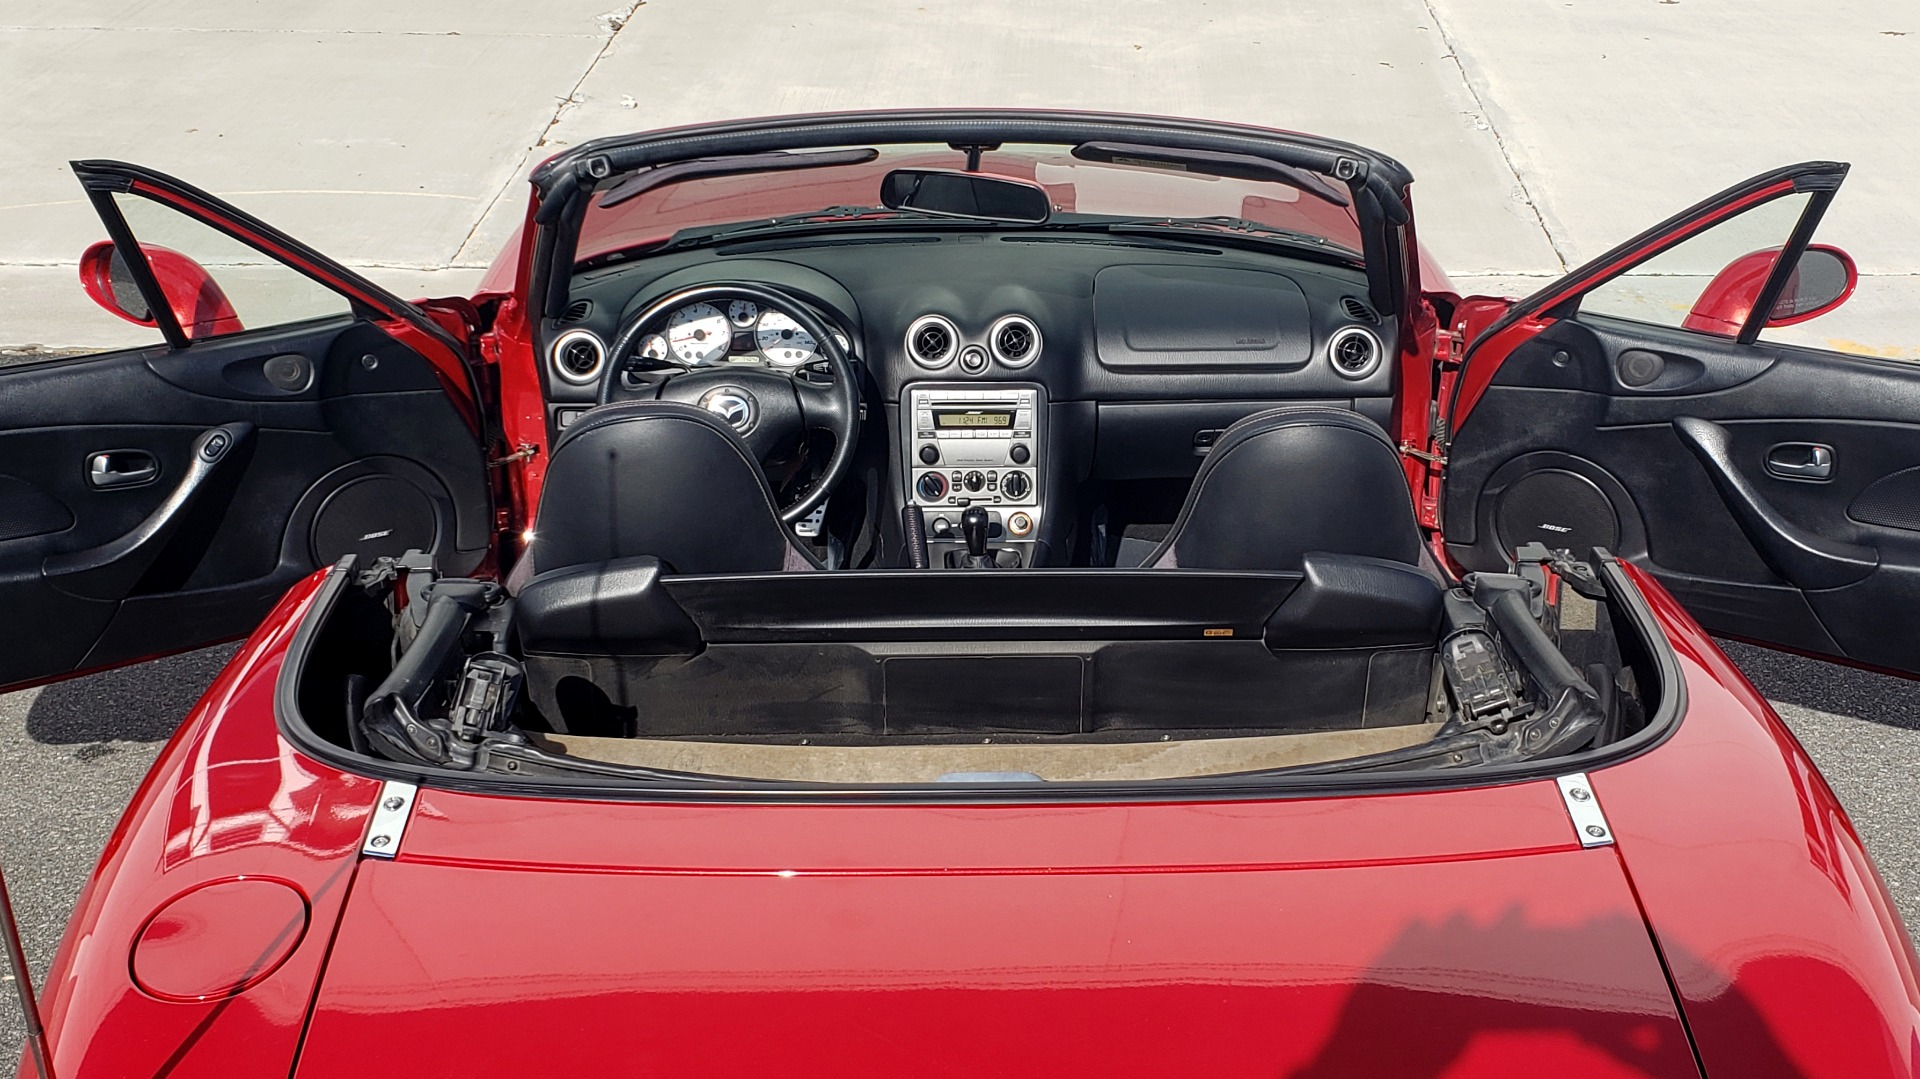 Used 2004 Mazda MX-5 MIATA 2DR CONVERTIBLE MAZDASPEED / GRAND TOURING PKG for sale Sold at Formula Imports in Charlotte NC 28227 71